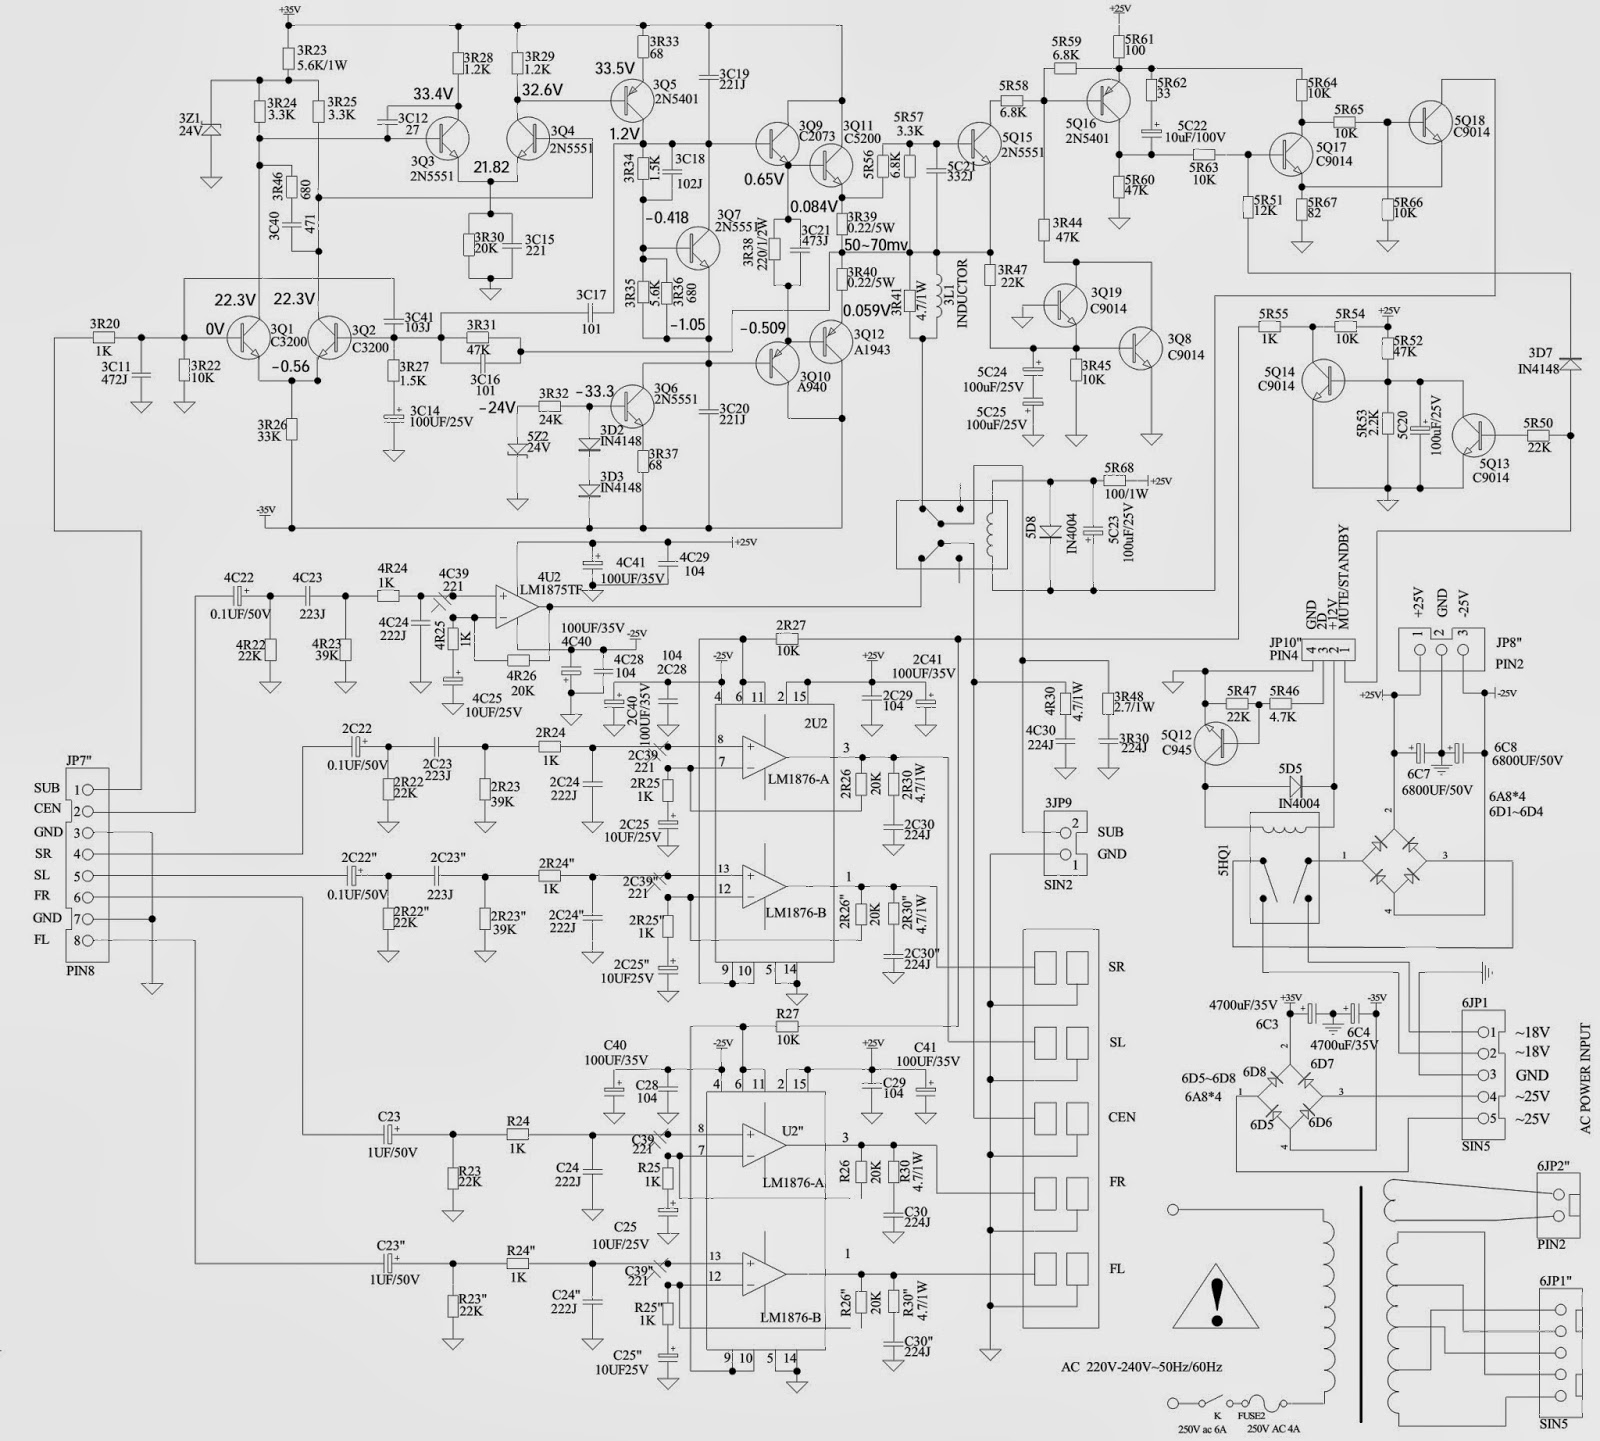 5 1 Surround Sound Schematic Diagram Speaker Circuit Amplifiercircuit Seekiccom Microlab Audio X 10 51